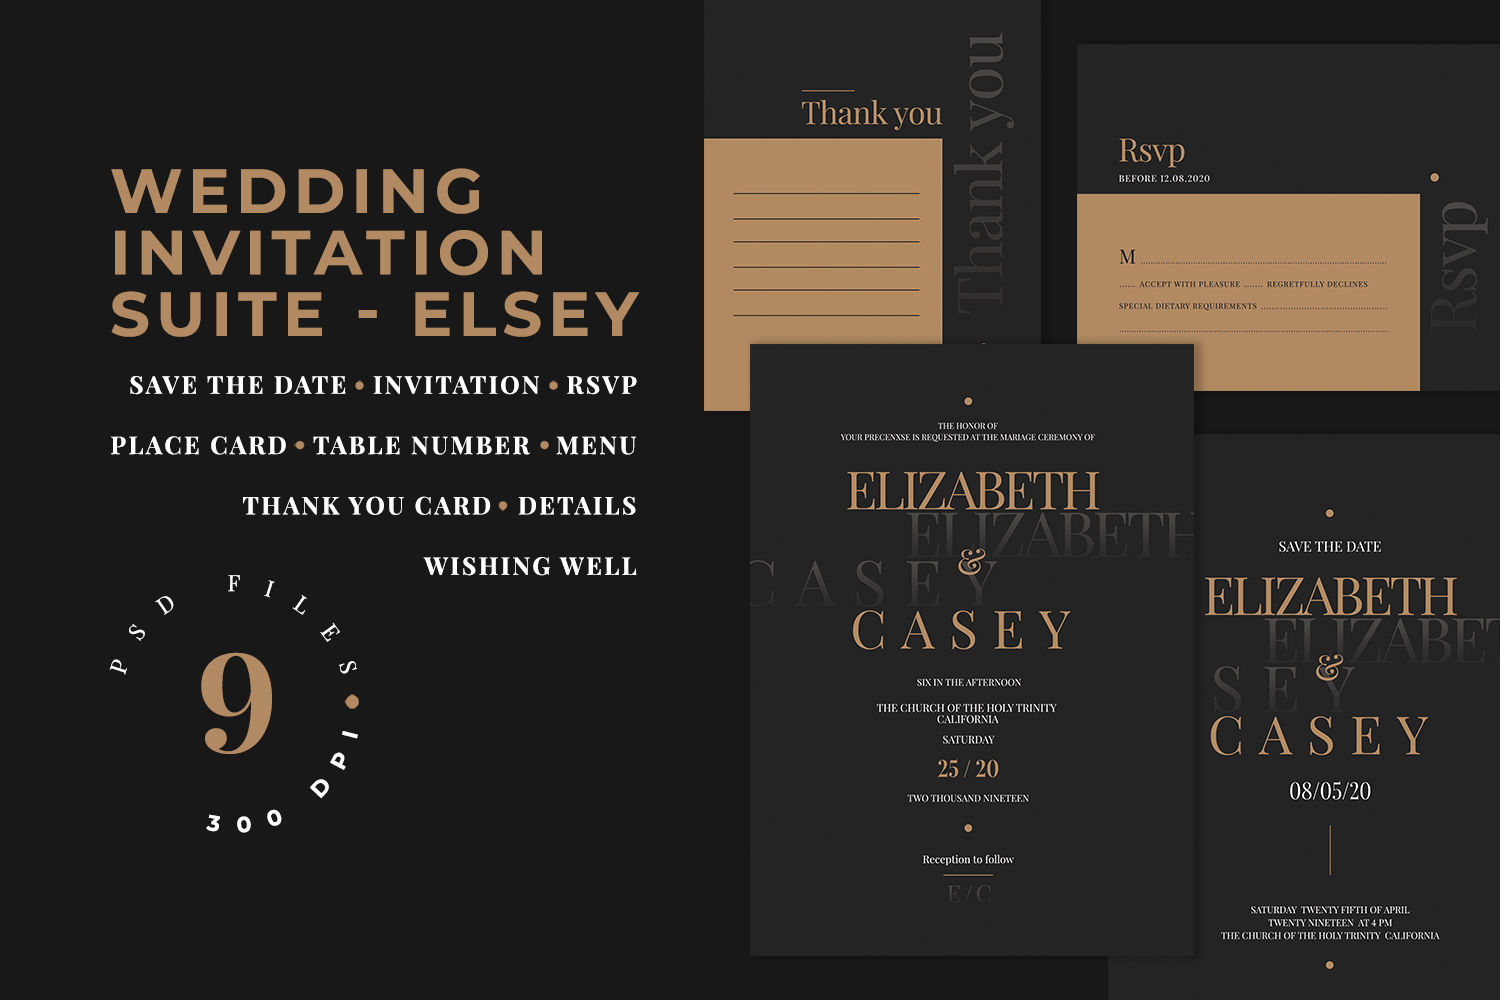 Wedding Invitation Suite - ELSEY example image 1